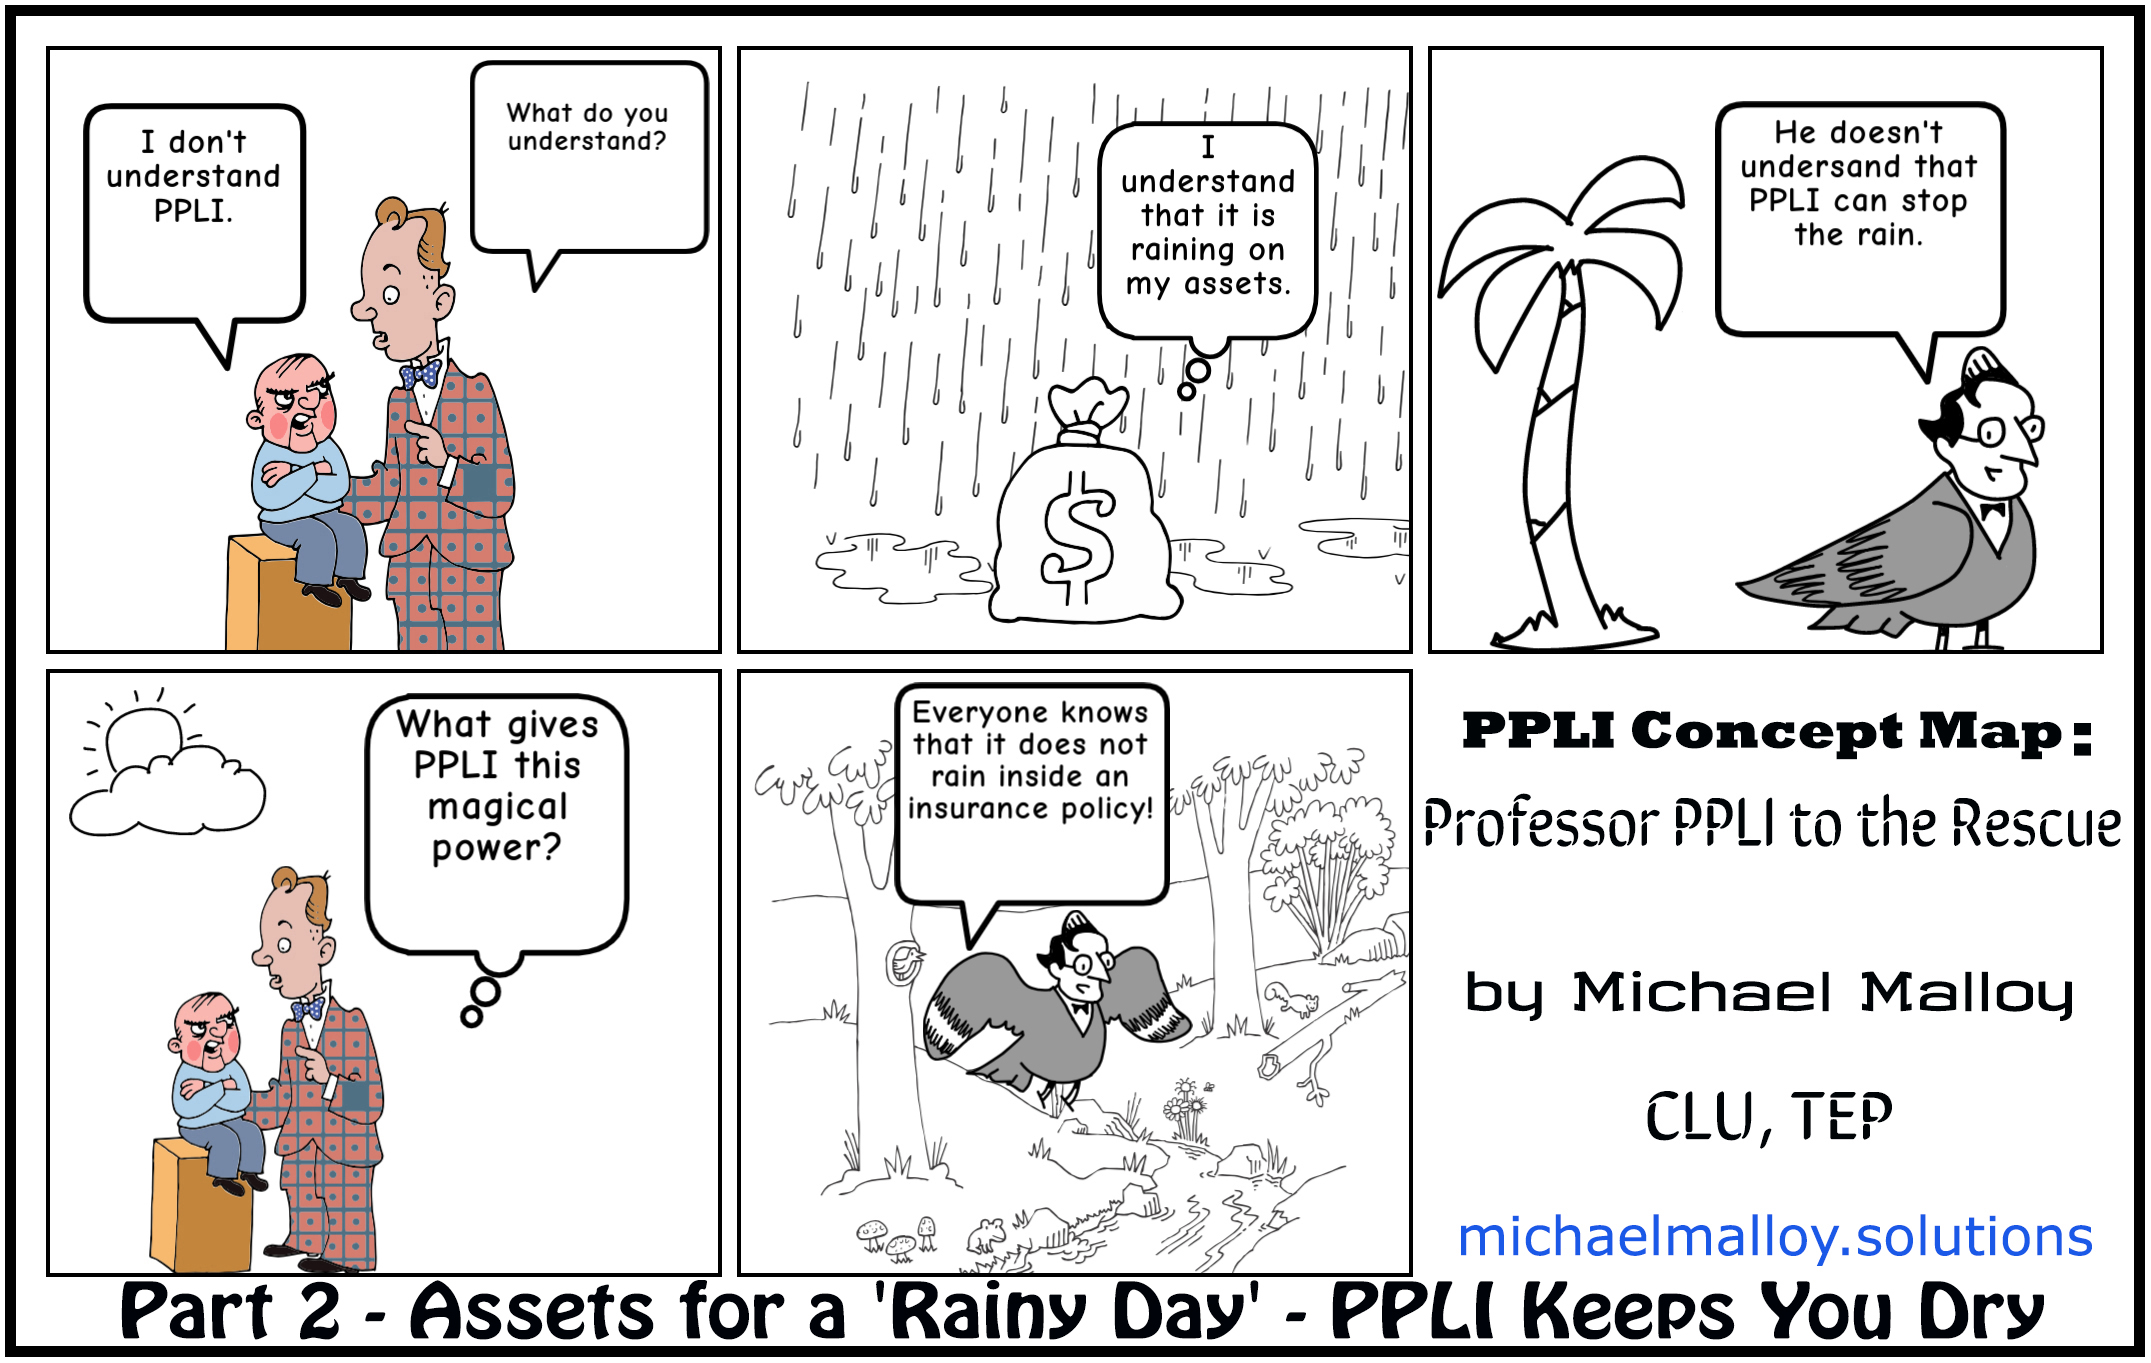 Part 2 - Assets for a 'Rainy Day' - PPLI Keeps You Dry